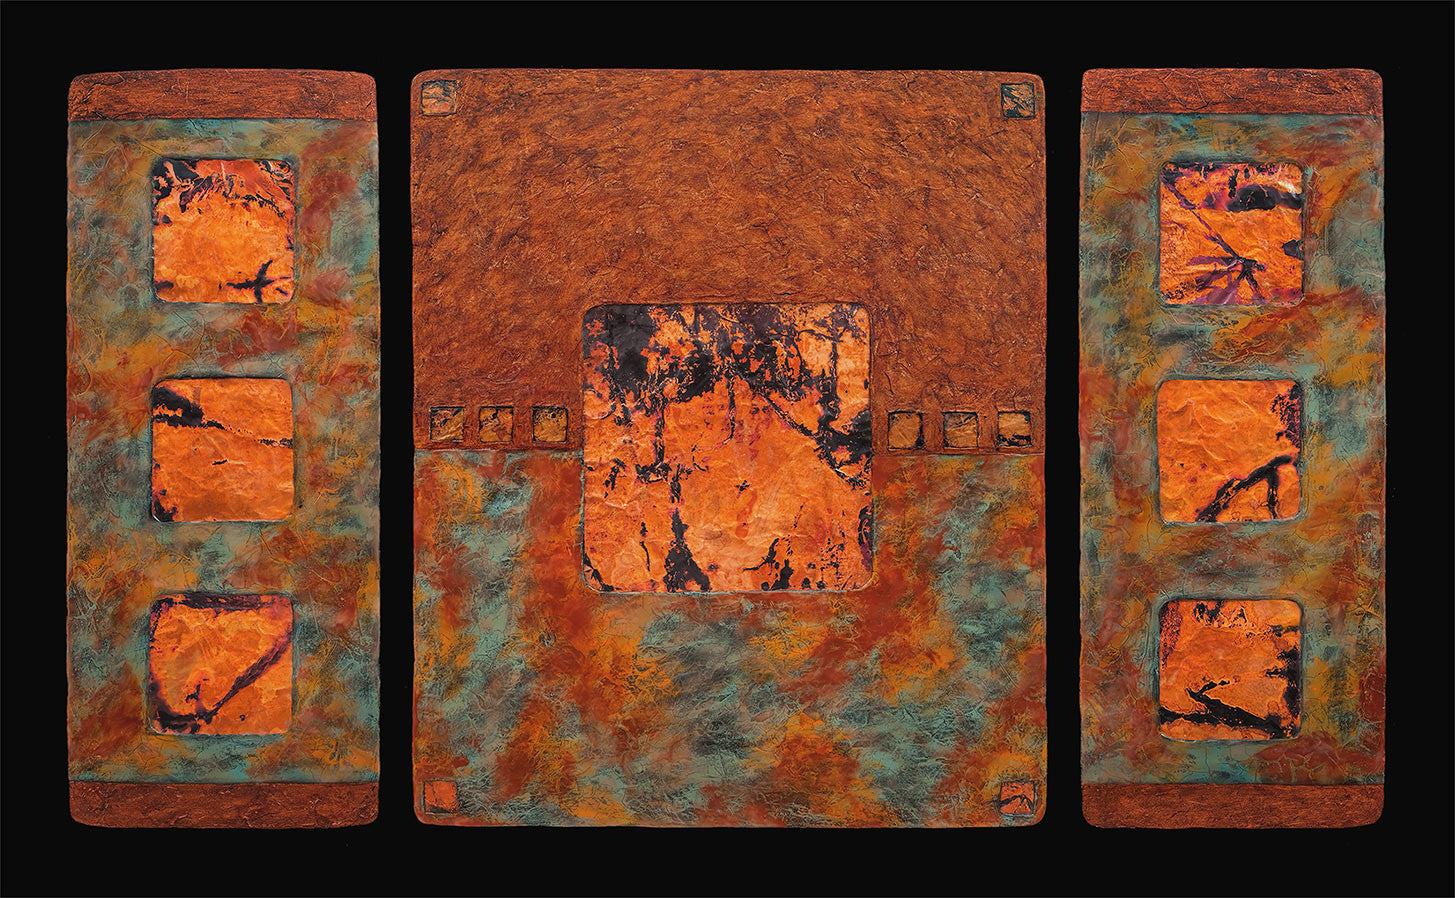 Earth & Fire / 55 x 32 x 1.5 / copper leaf - acrylics - fired and patinaed copper on abaca fiber panels